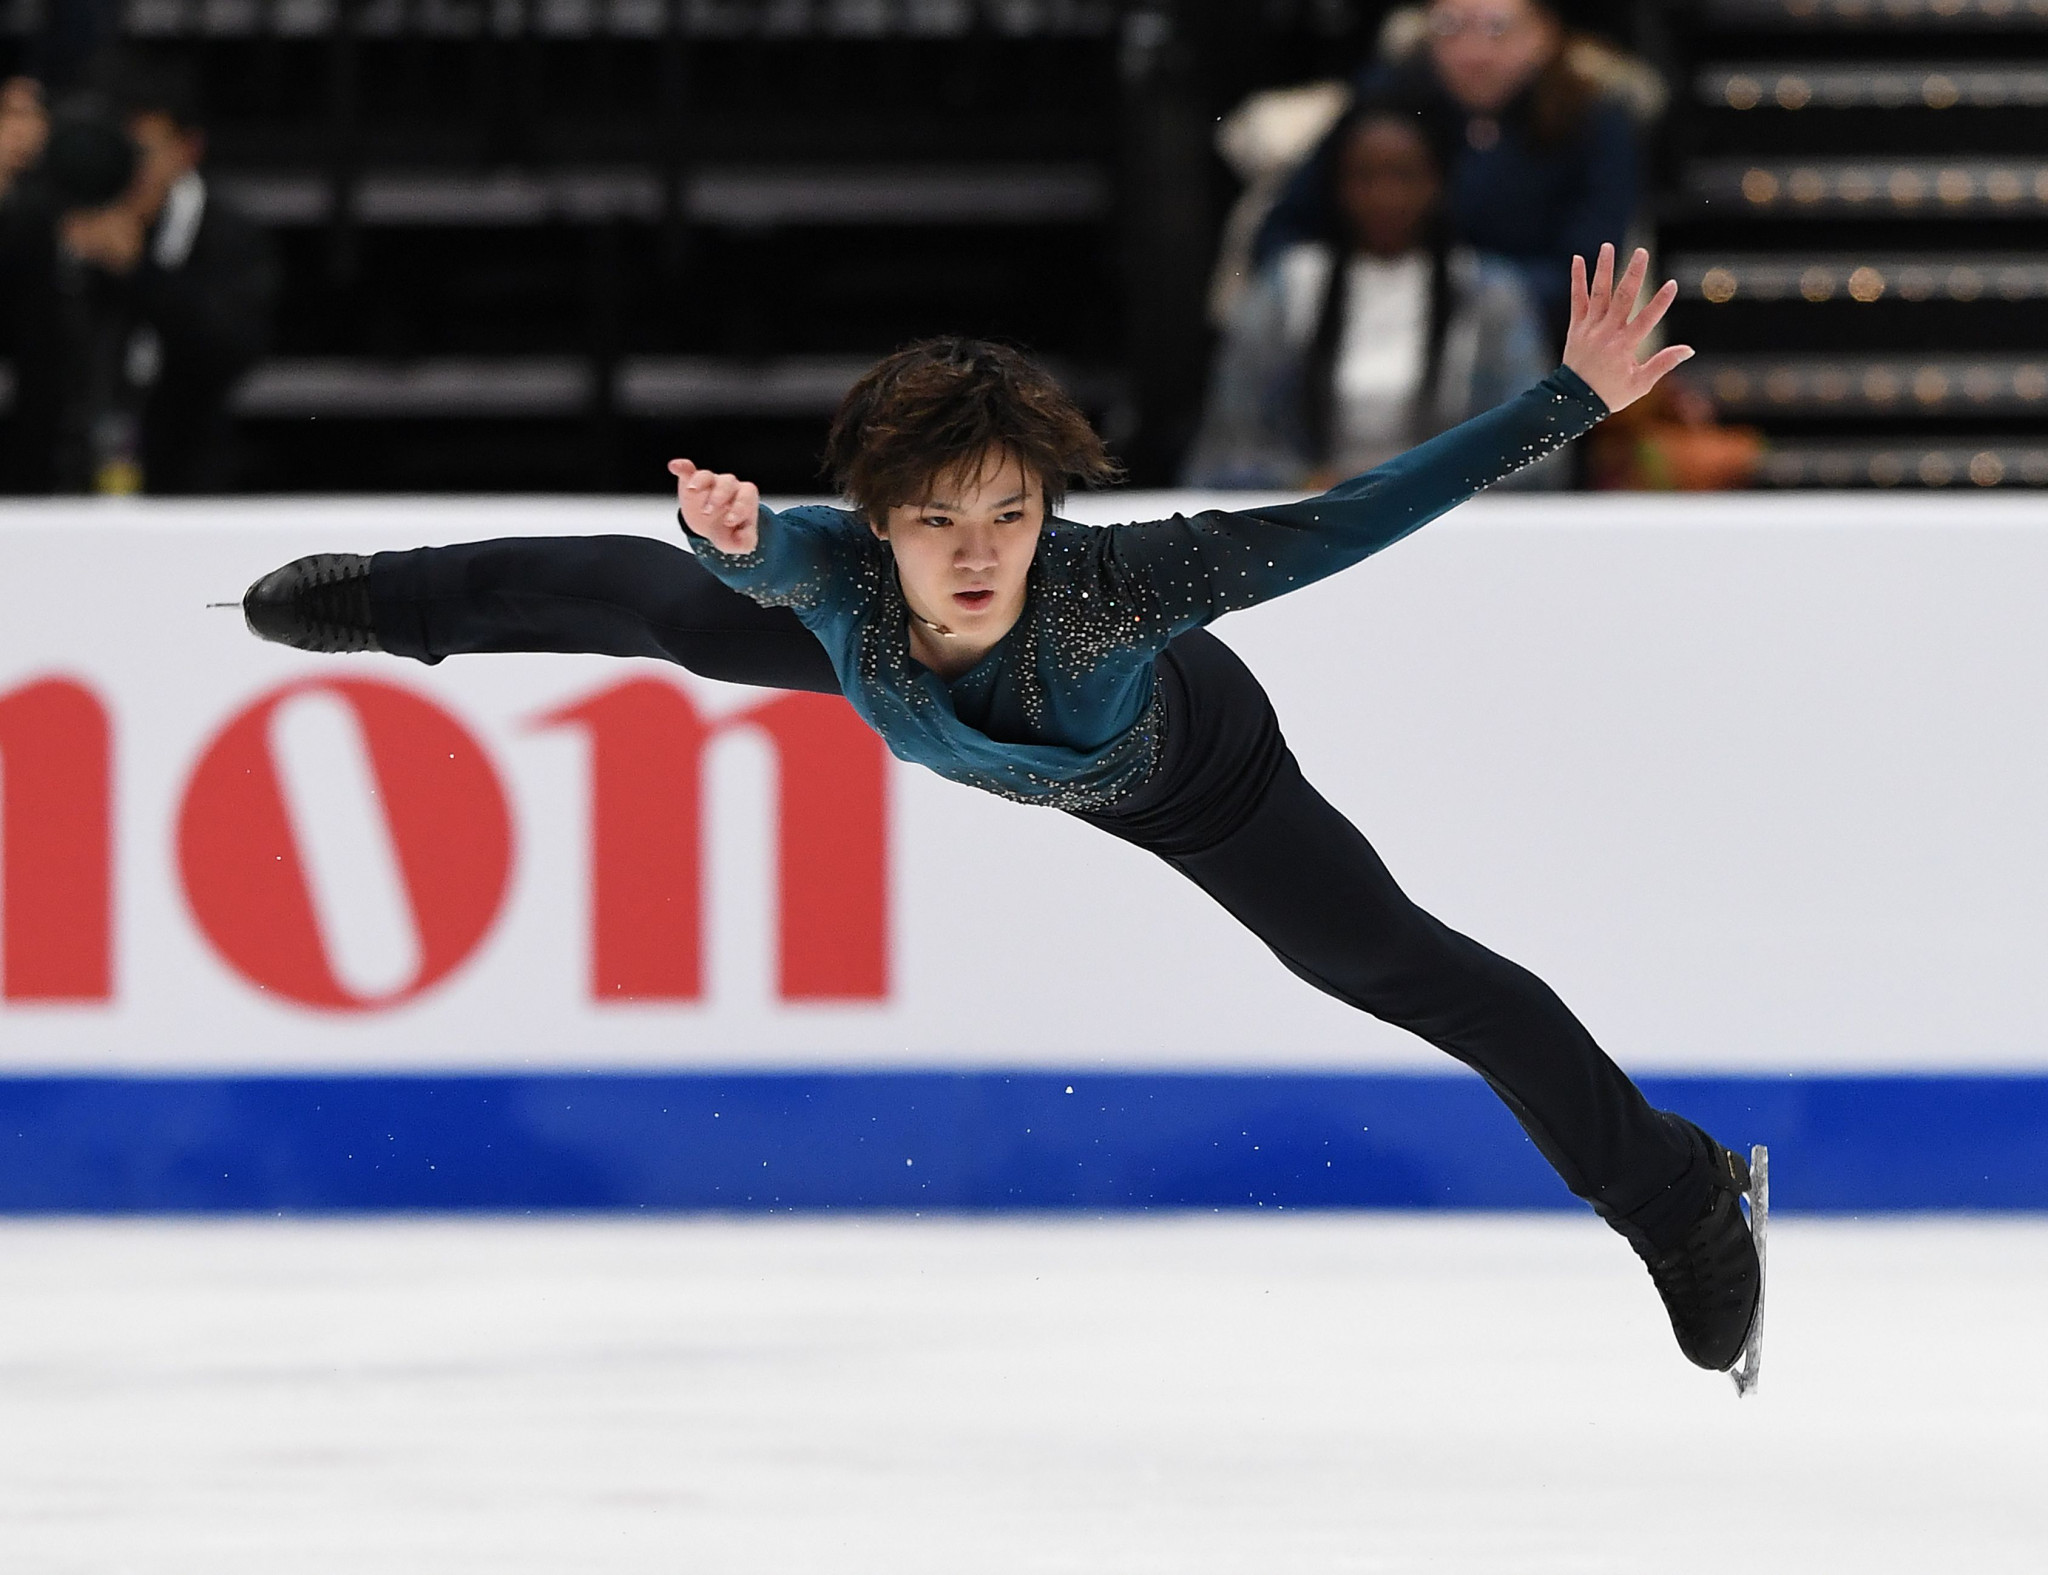 Uno wins men's title at ISU Four Continents Figure Skating Championships